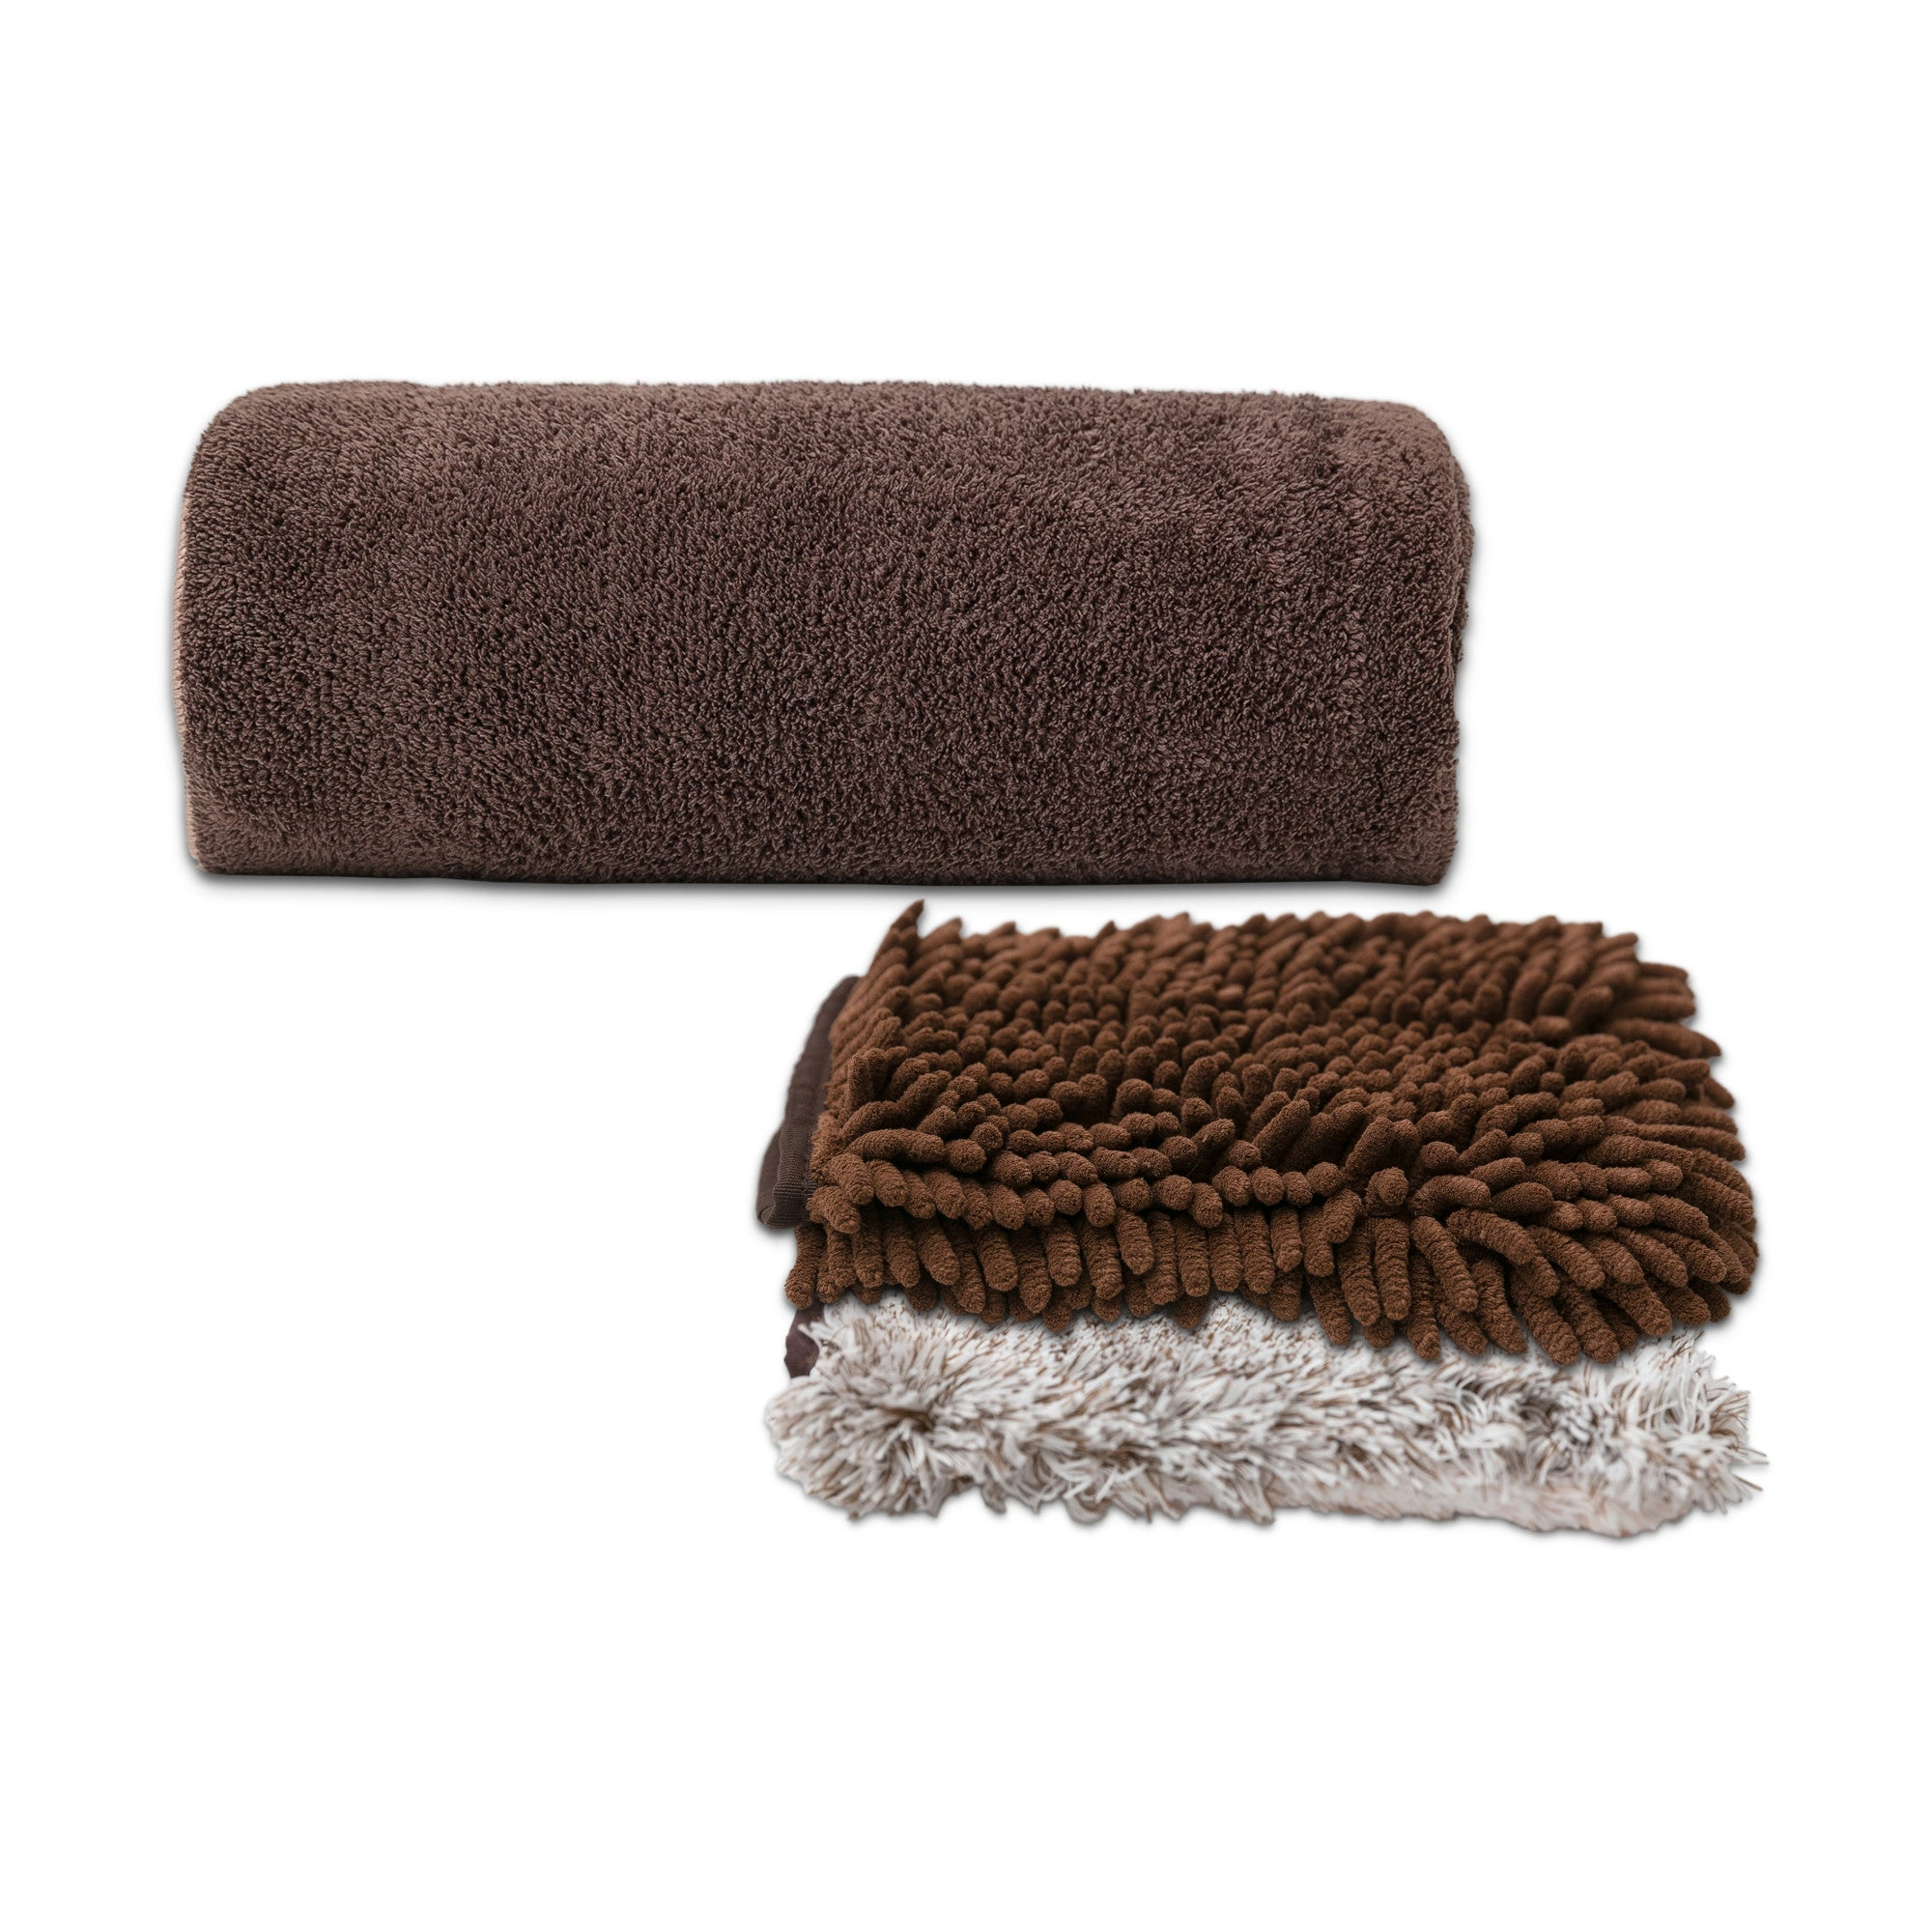 1cd1ca45d96b Pet Towels and Groomers | Chemical-Free Microfiber Products - E ...